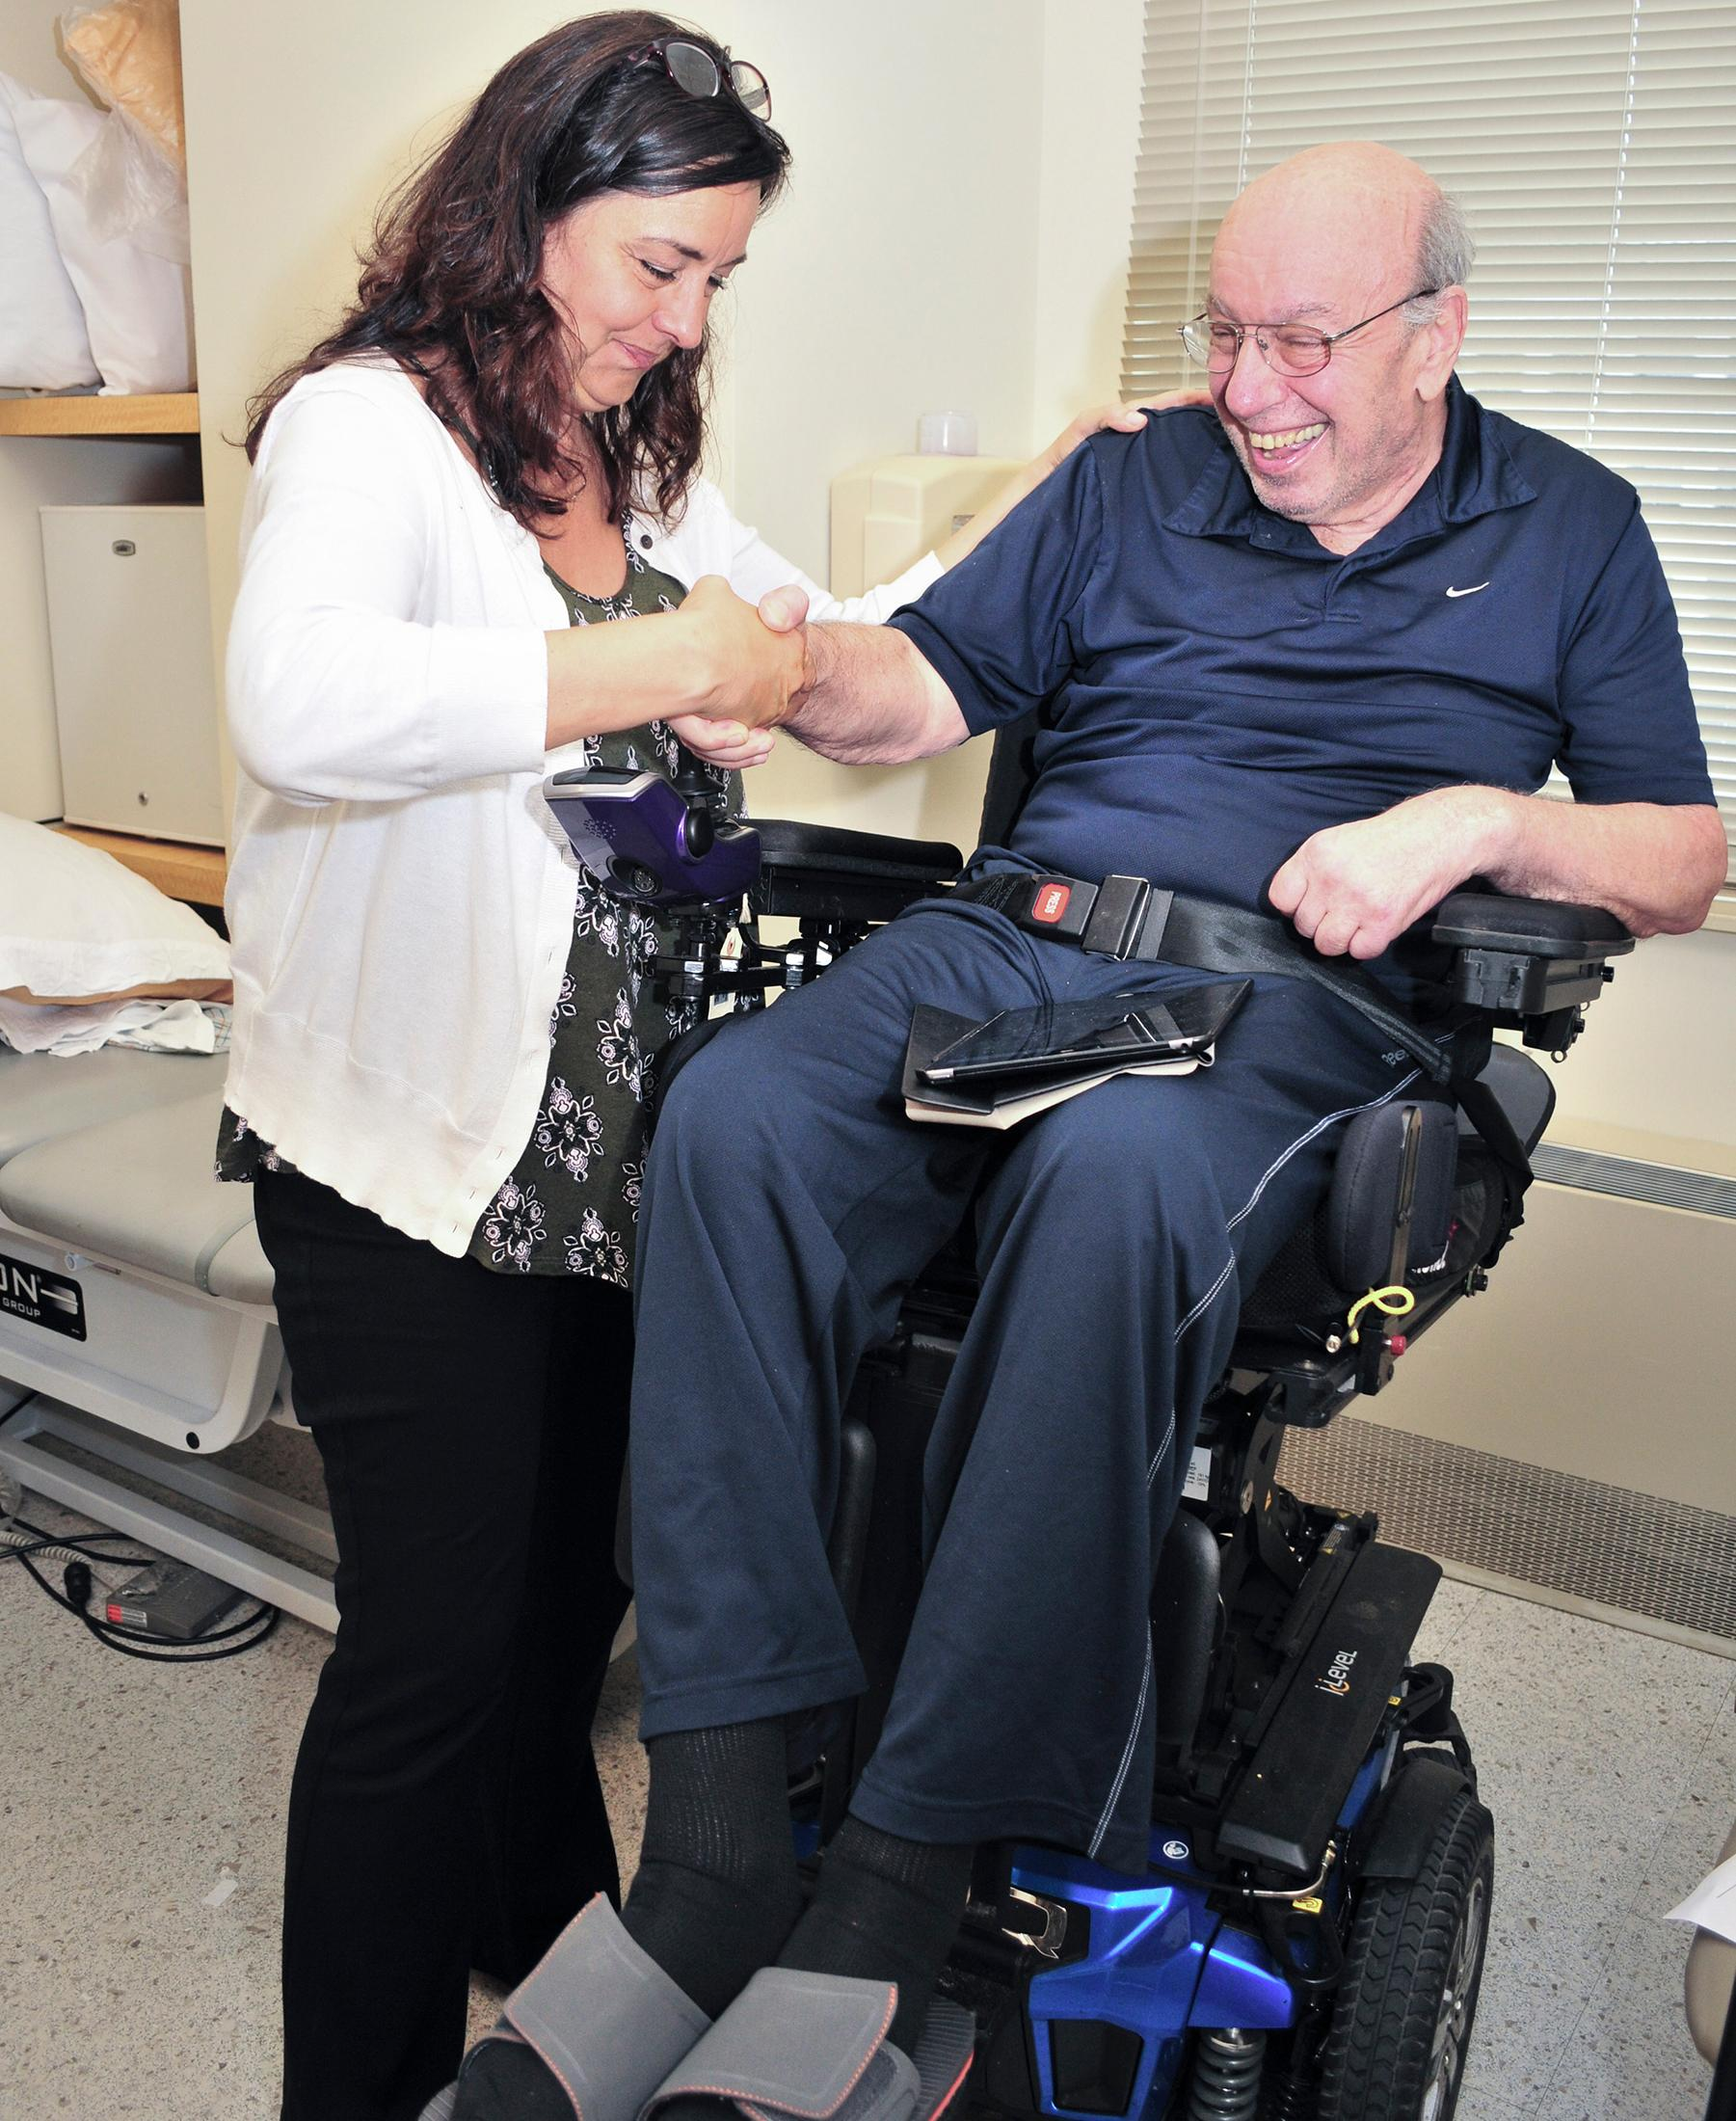 man in wheelchair receiving care from doctor